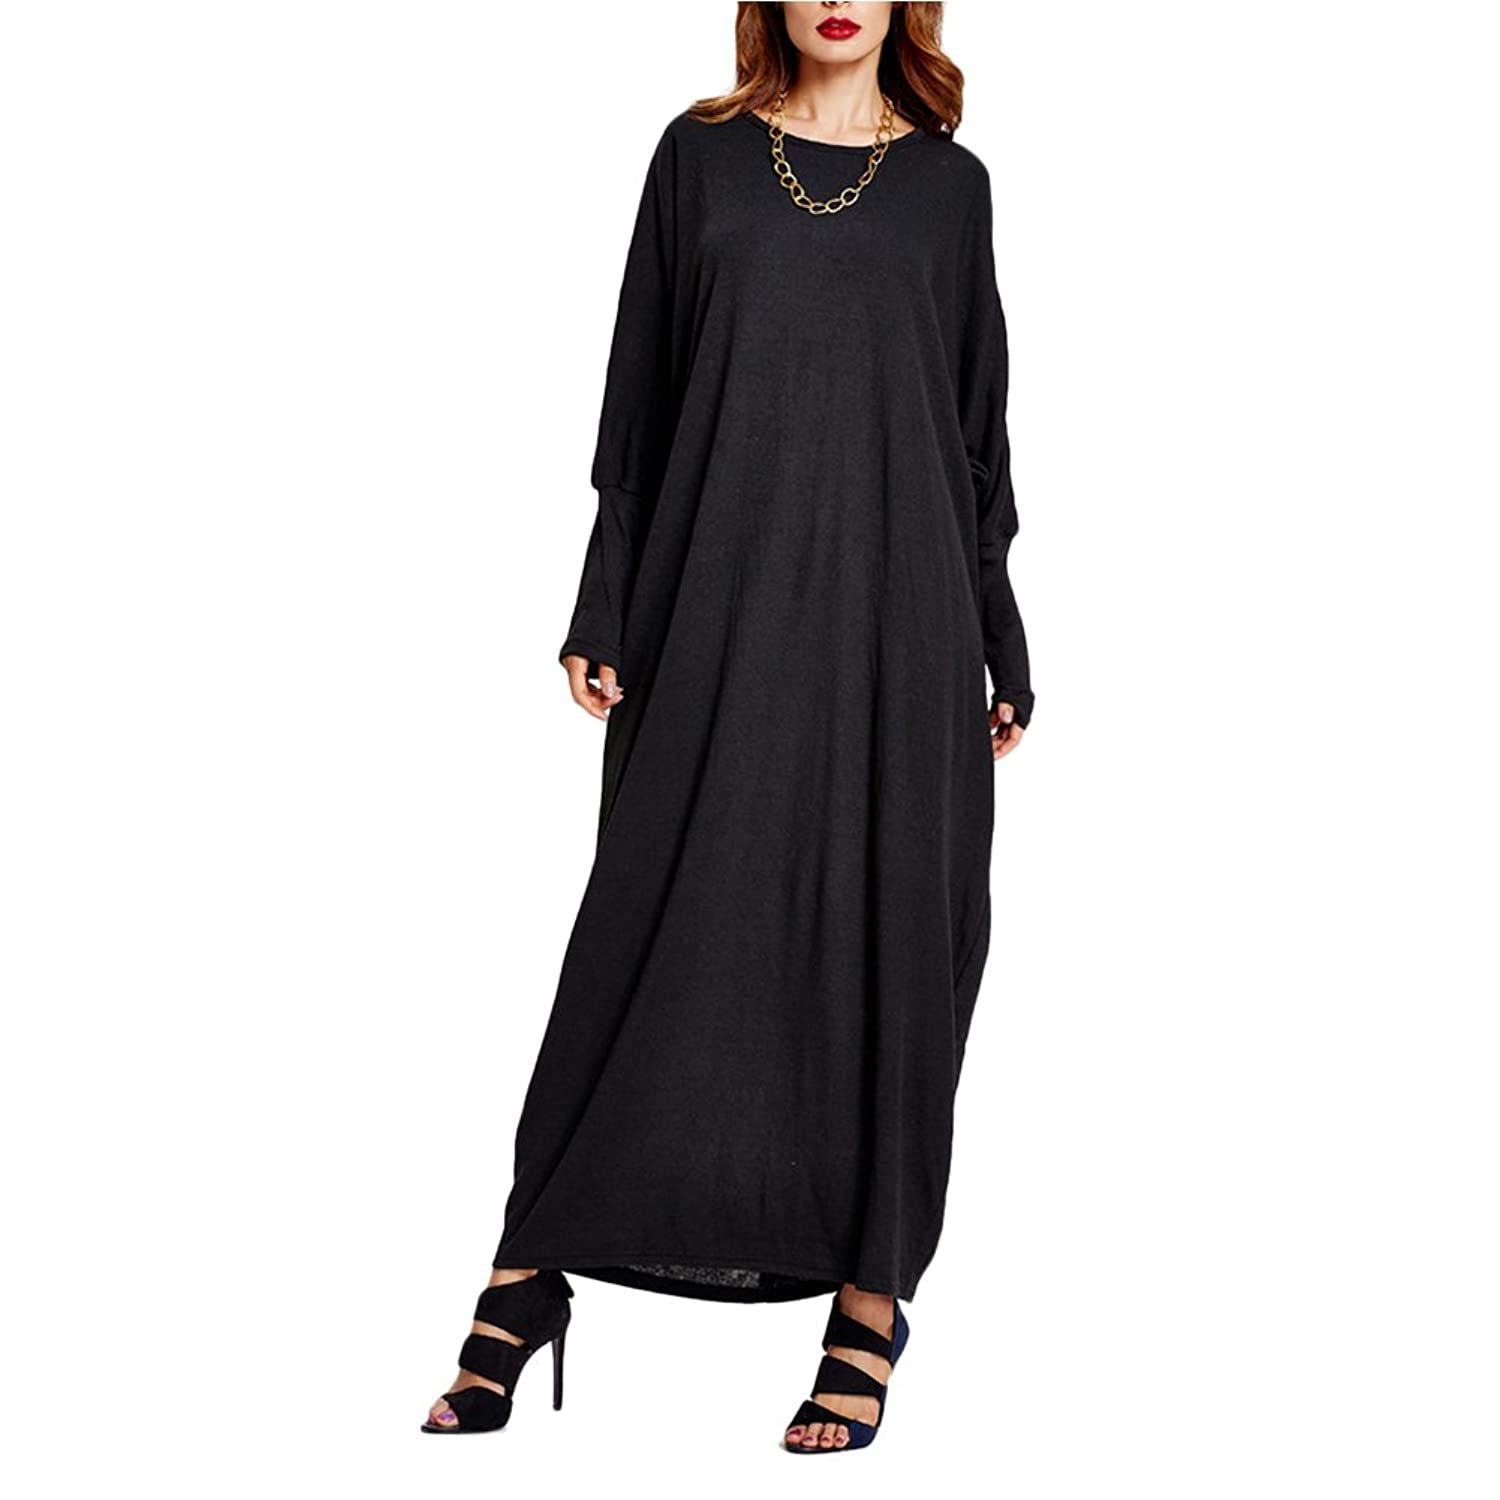 Zhuhaitf Fashion Oversized Dresses Kaftan Abaya Robes Maxi Length For Muslims Women at Amazon Womens Clothing store: